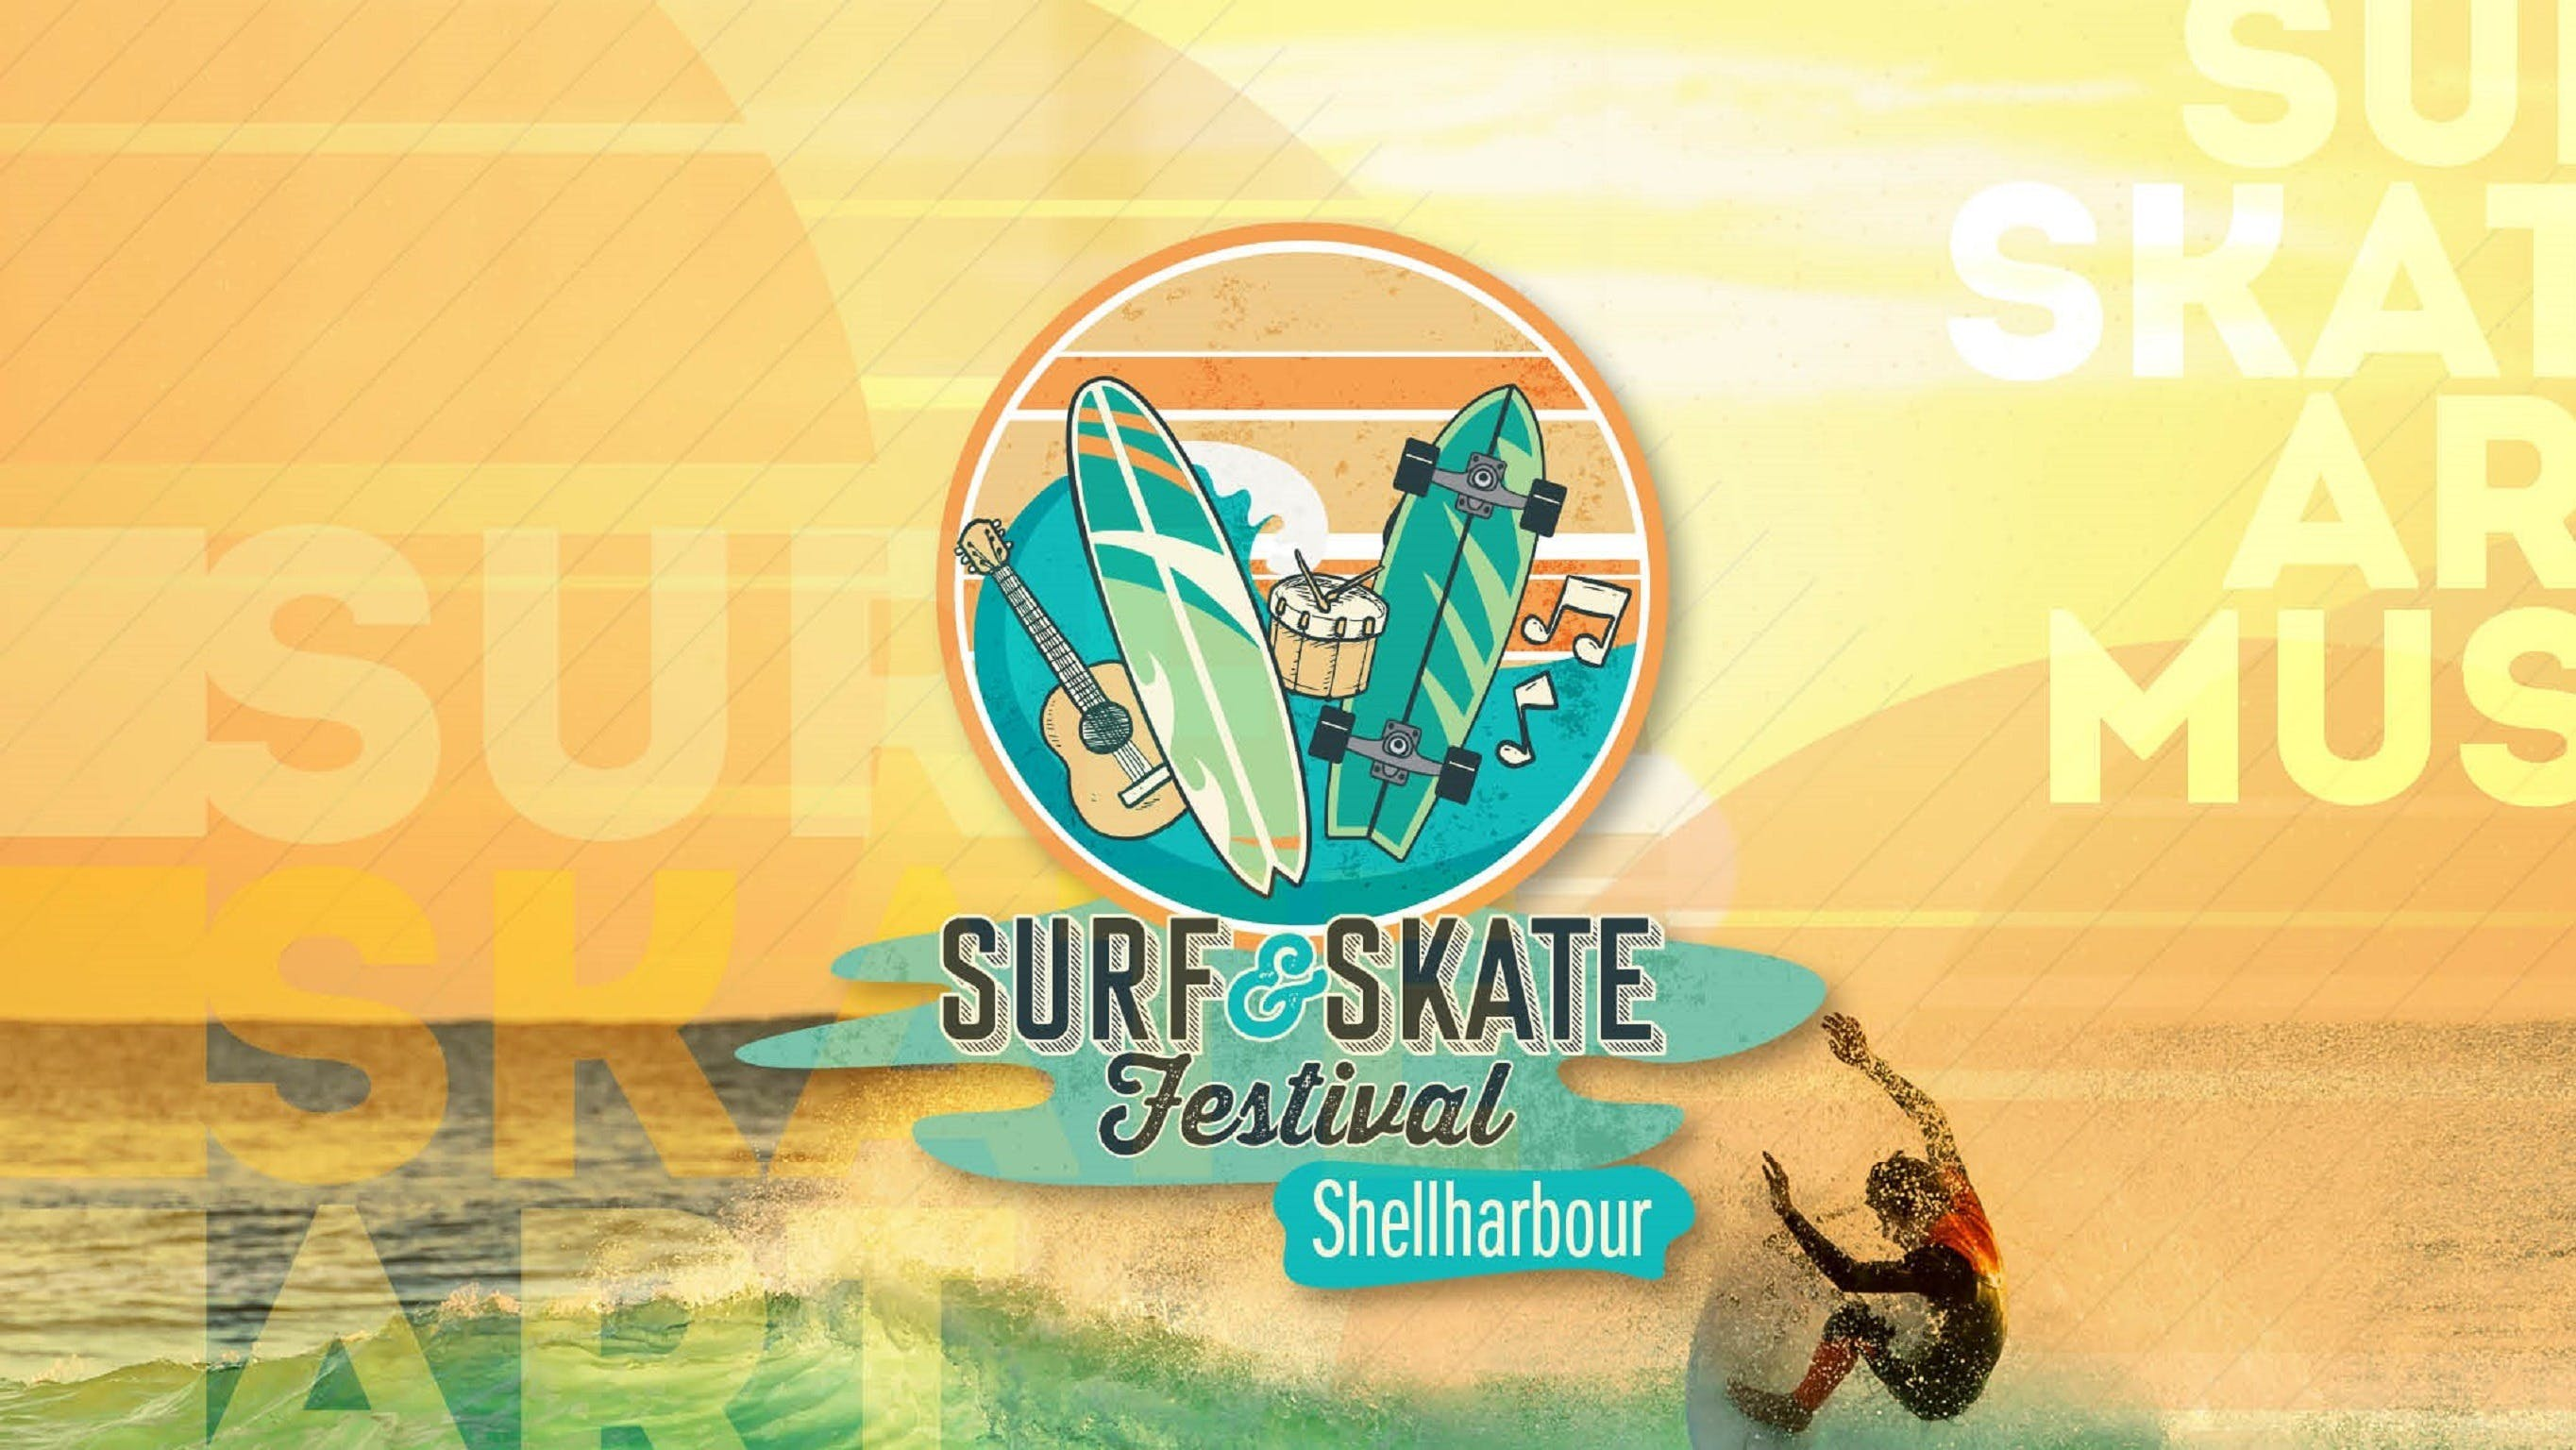 Skate and Surf Festival Shellharbour - Hotel Accommodation